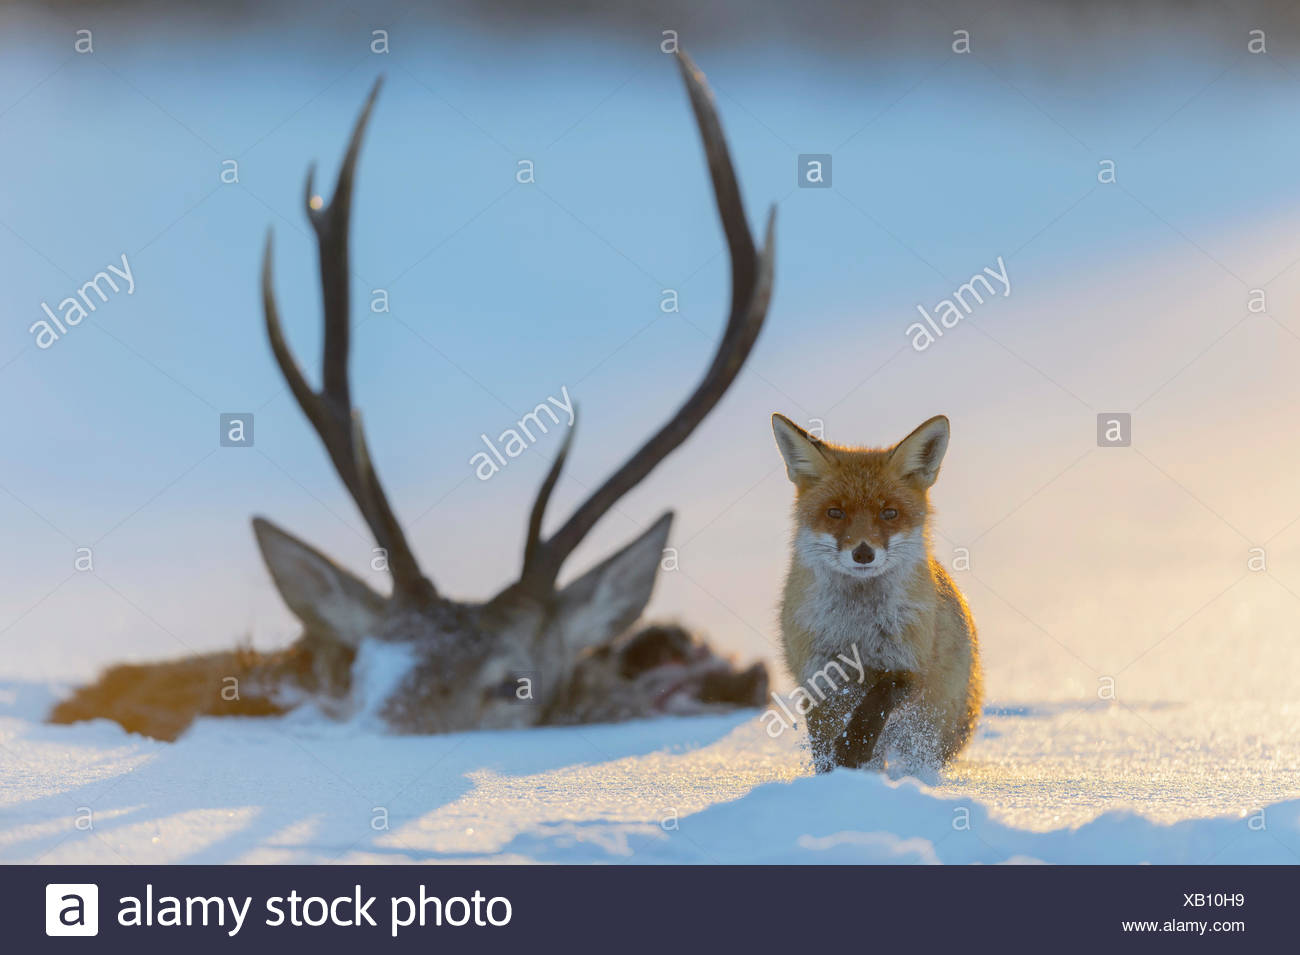 Red fox (Vulpes vulpes), by the carcass of a red deer that fell into the ice, frozen lake, Bohemian Forest, Czech Republic - Stock Image